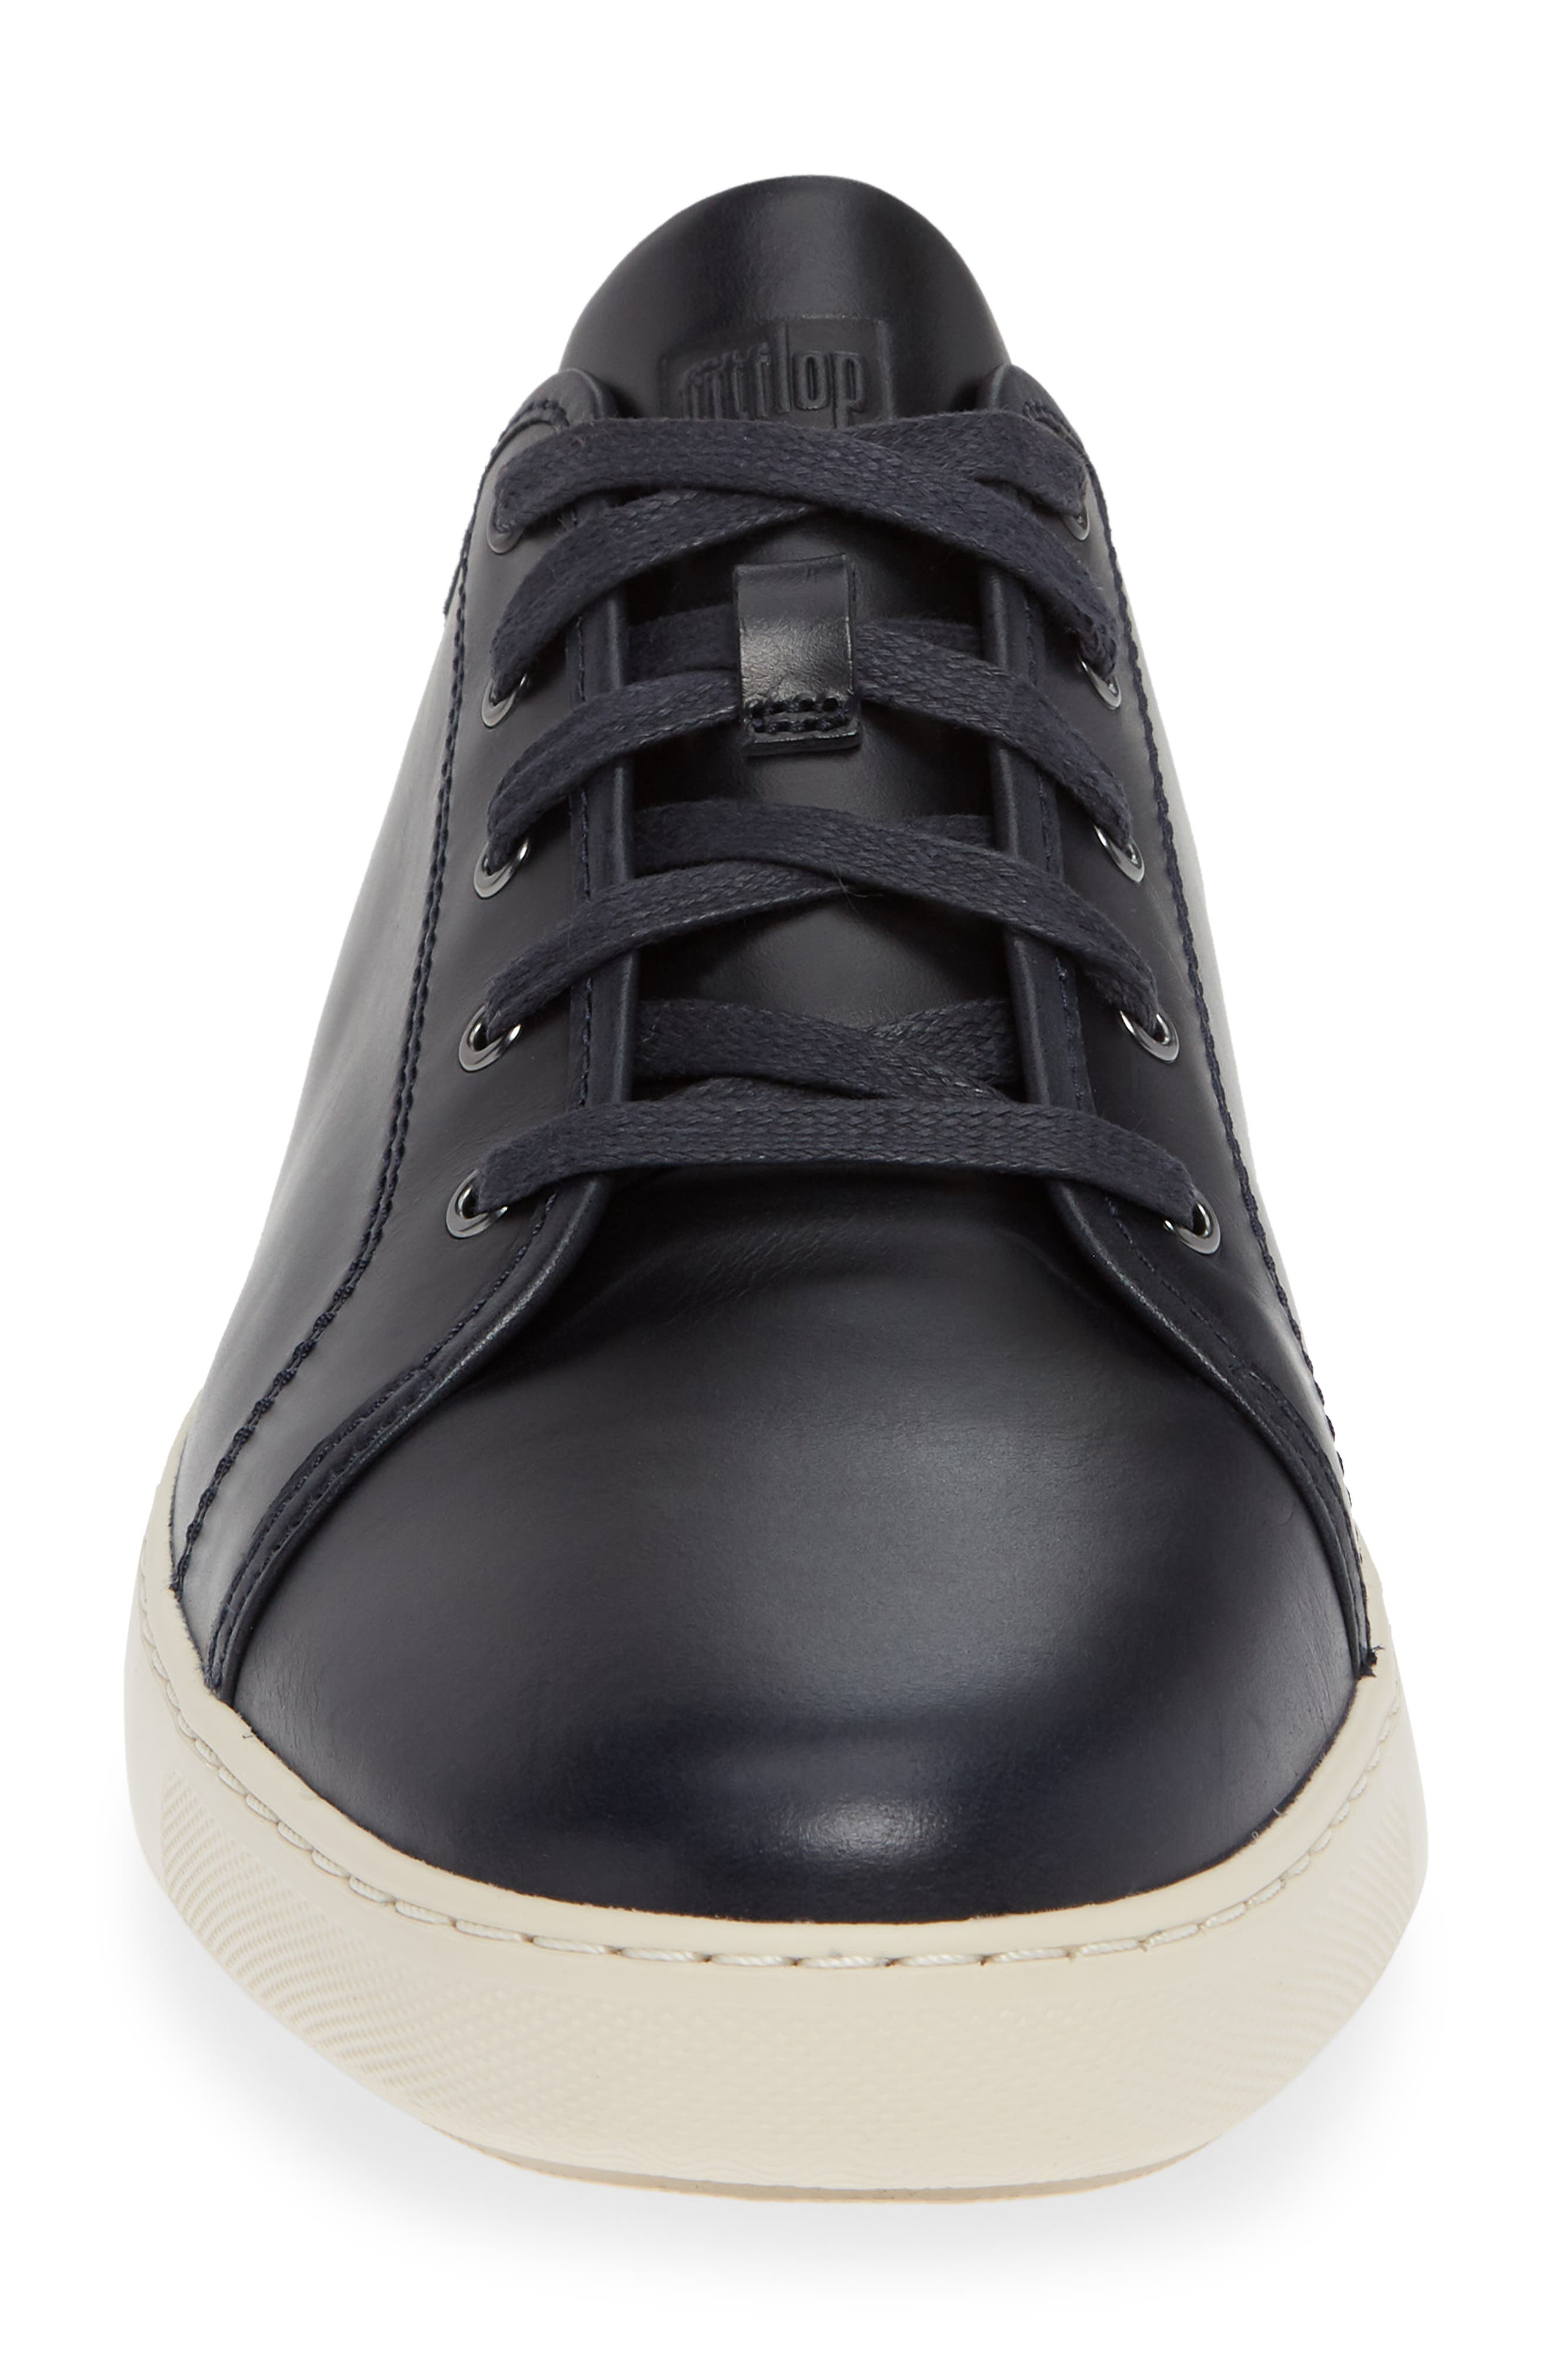 Christophe Low Top Sneaker,                             Alternate thumbnail 4, color,                             411